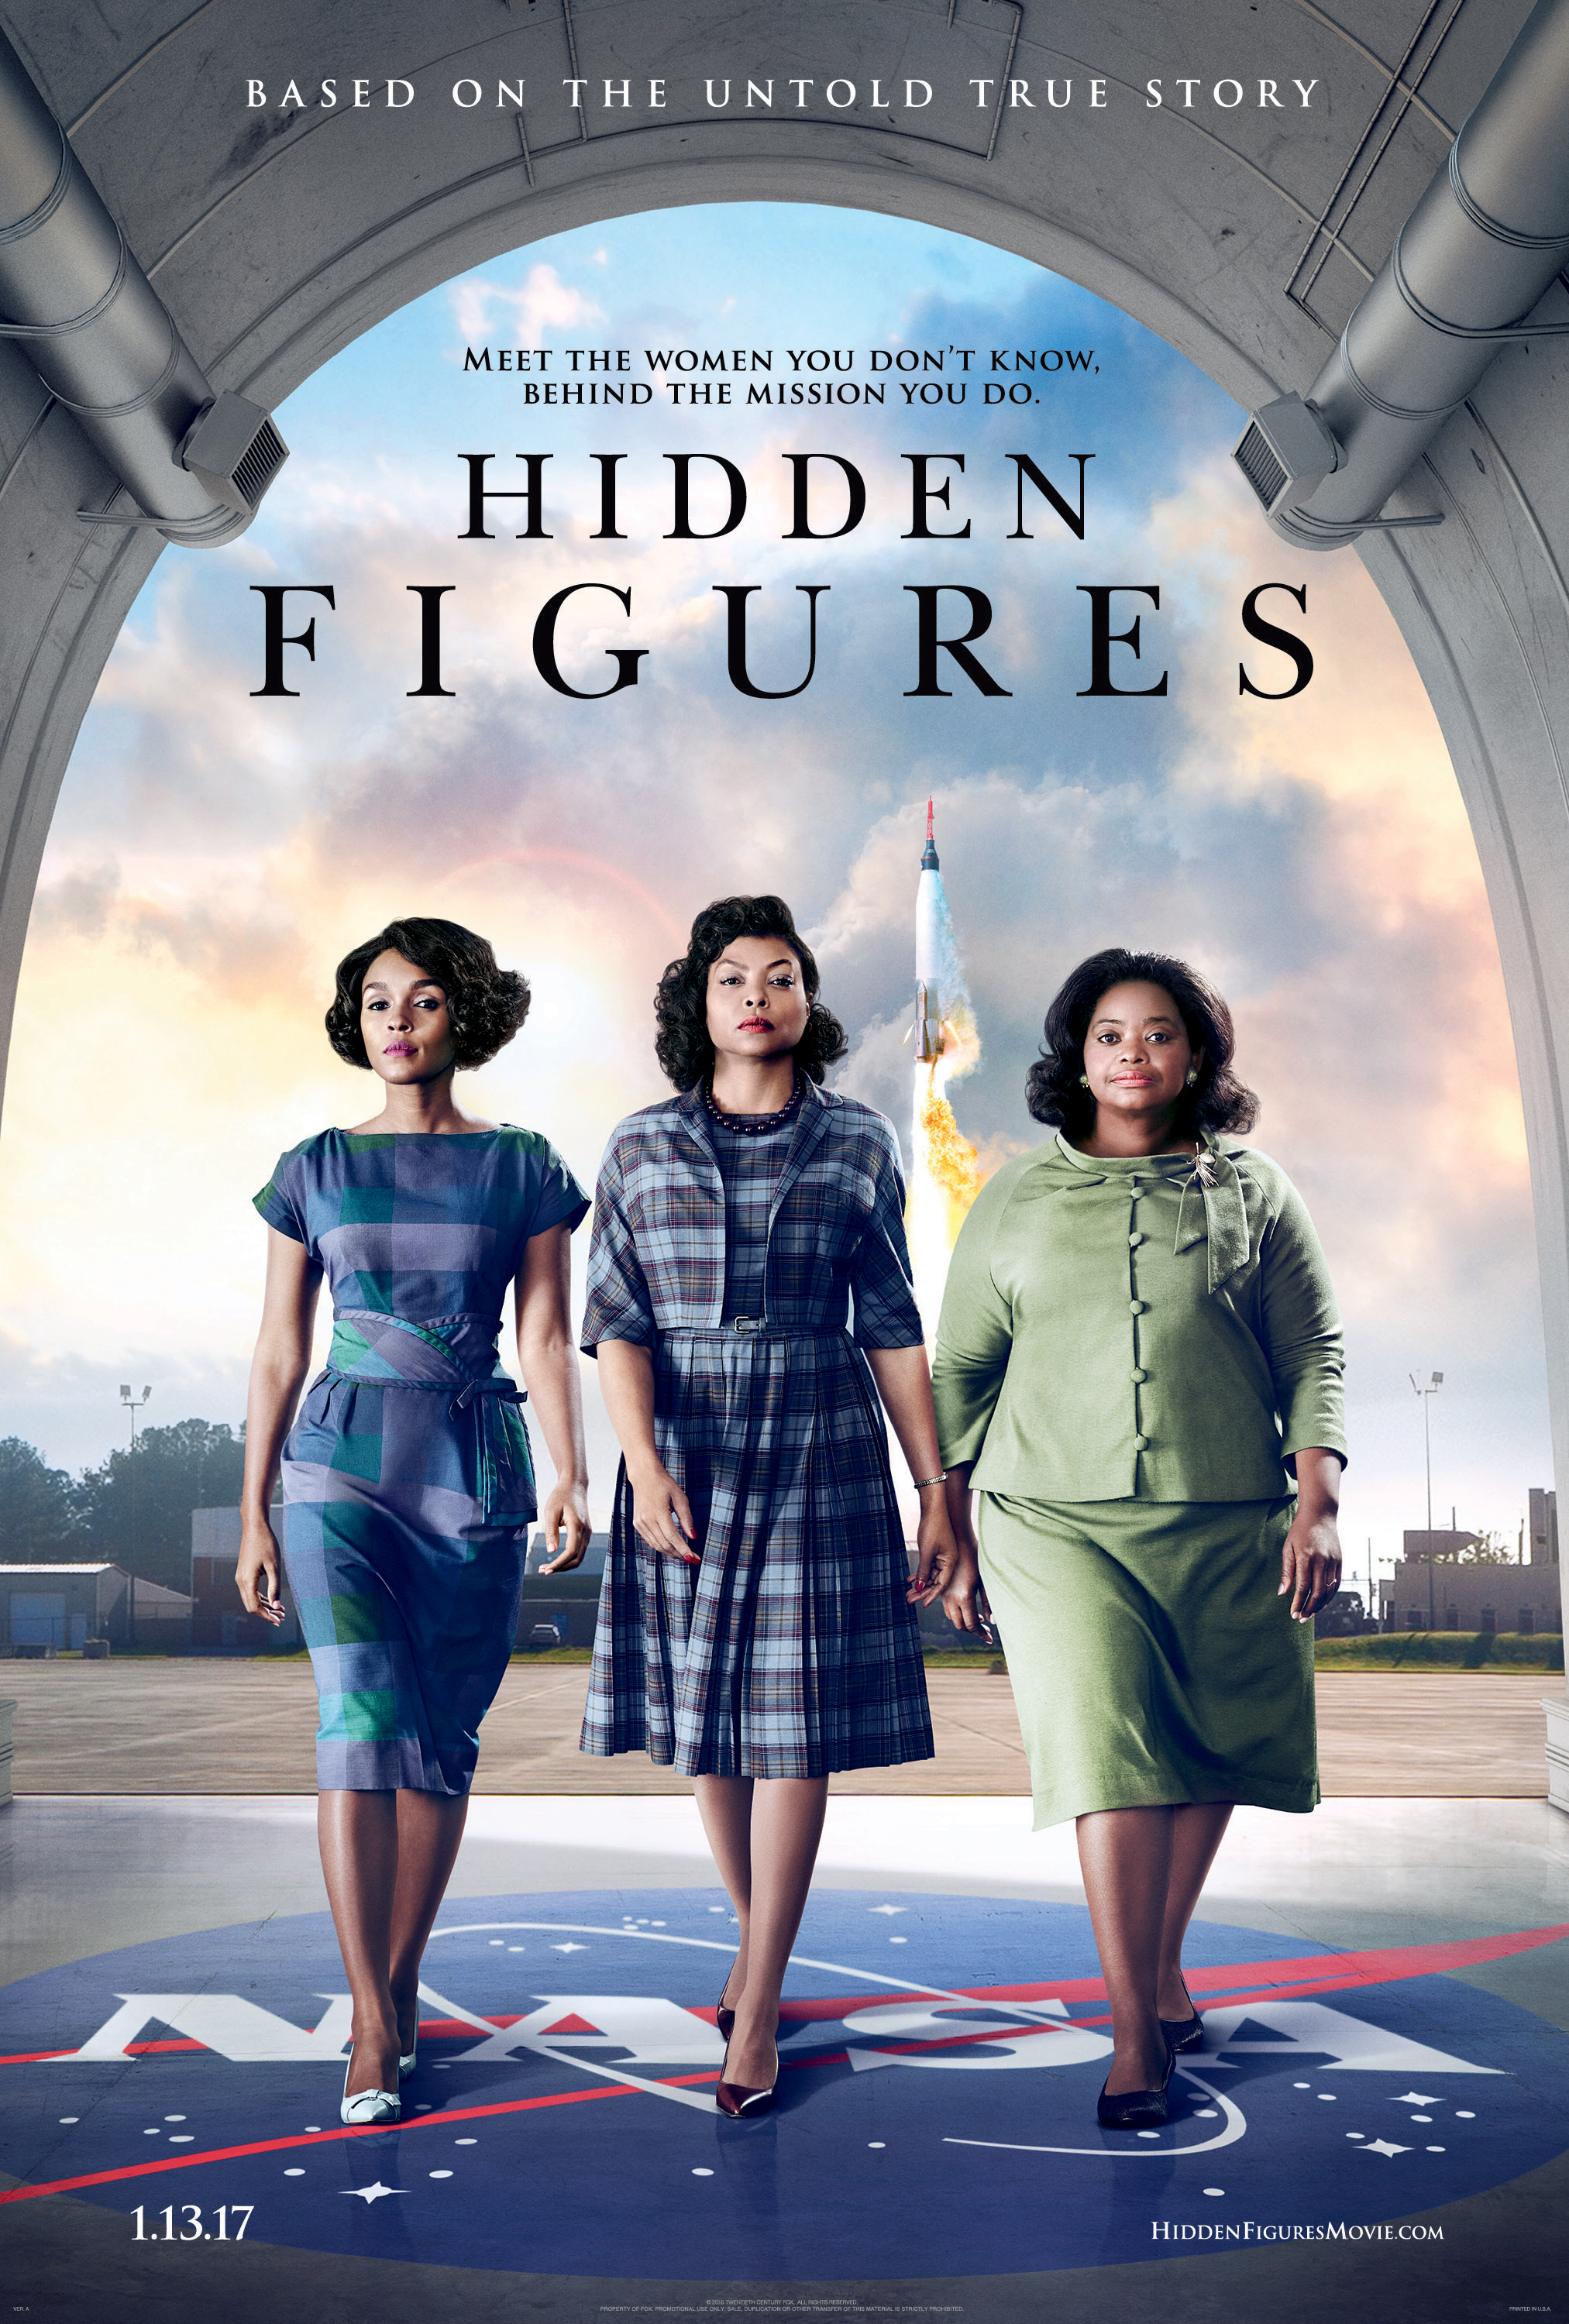 https://i0.wp.com/www.blackfilm.com/read/wp-content/uploads/2016/08/Hidden-Figures-poster.jpg